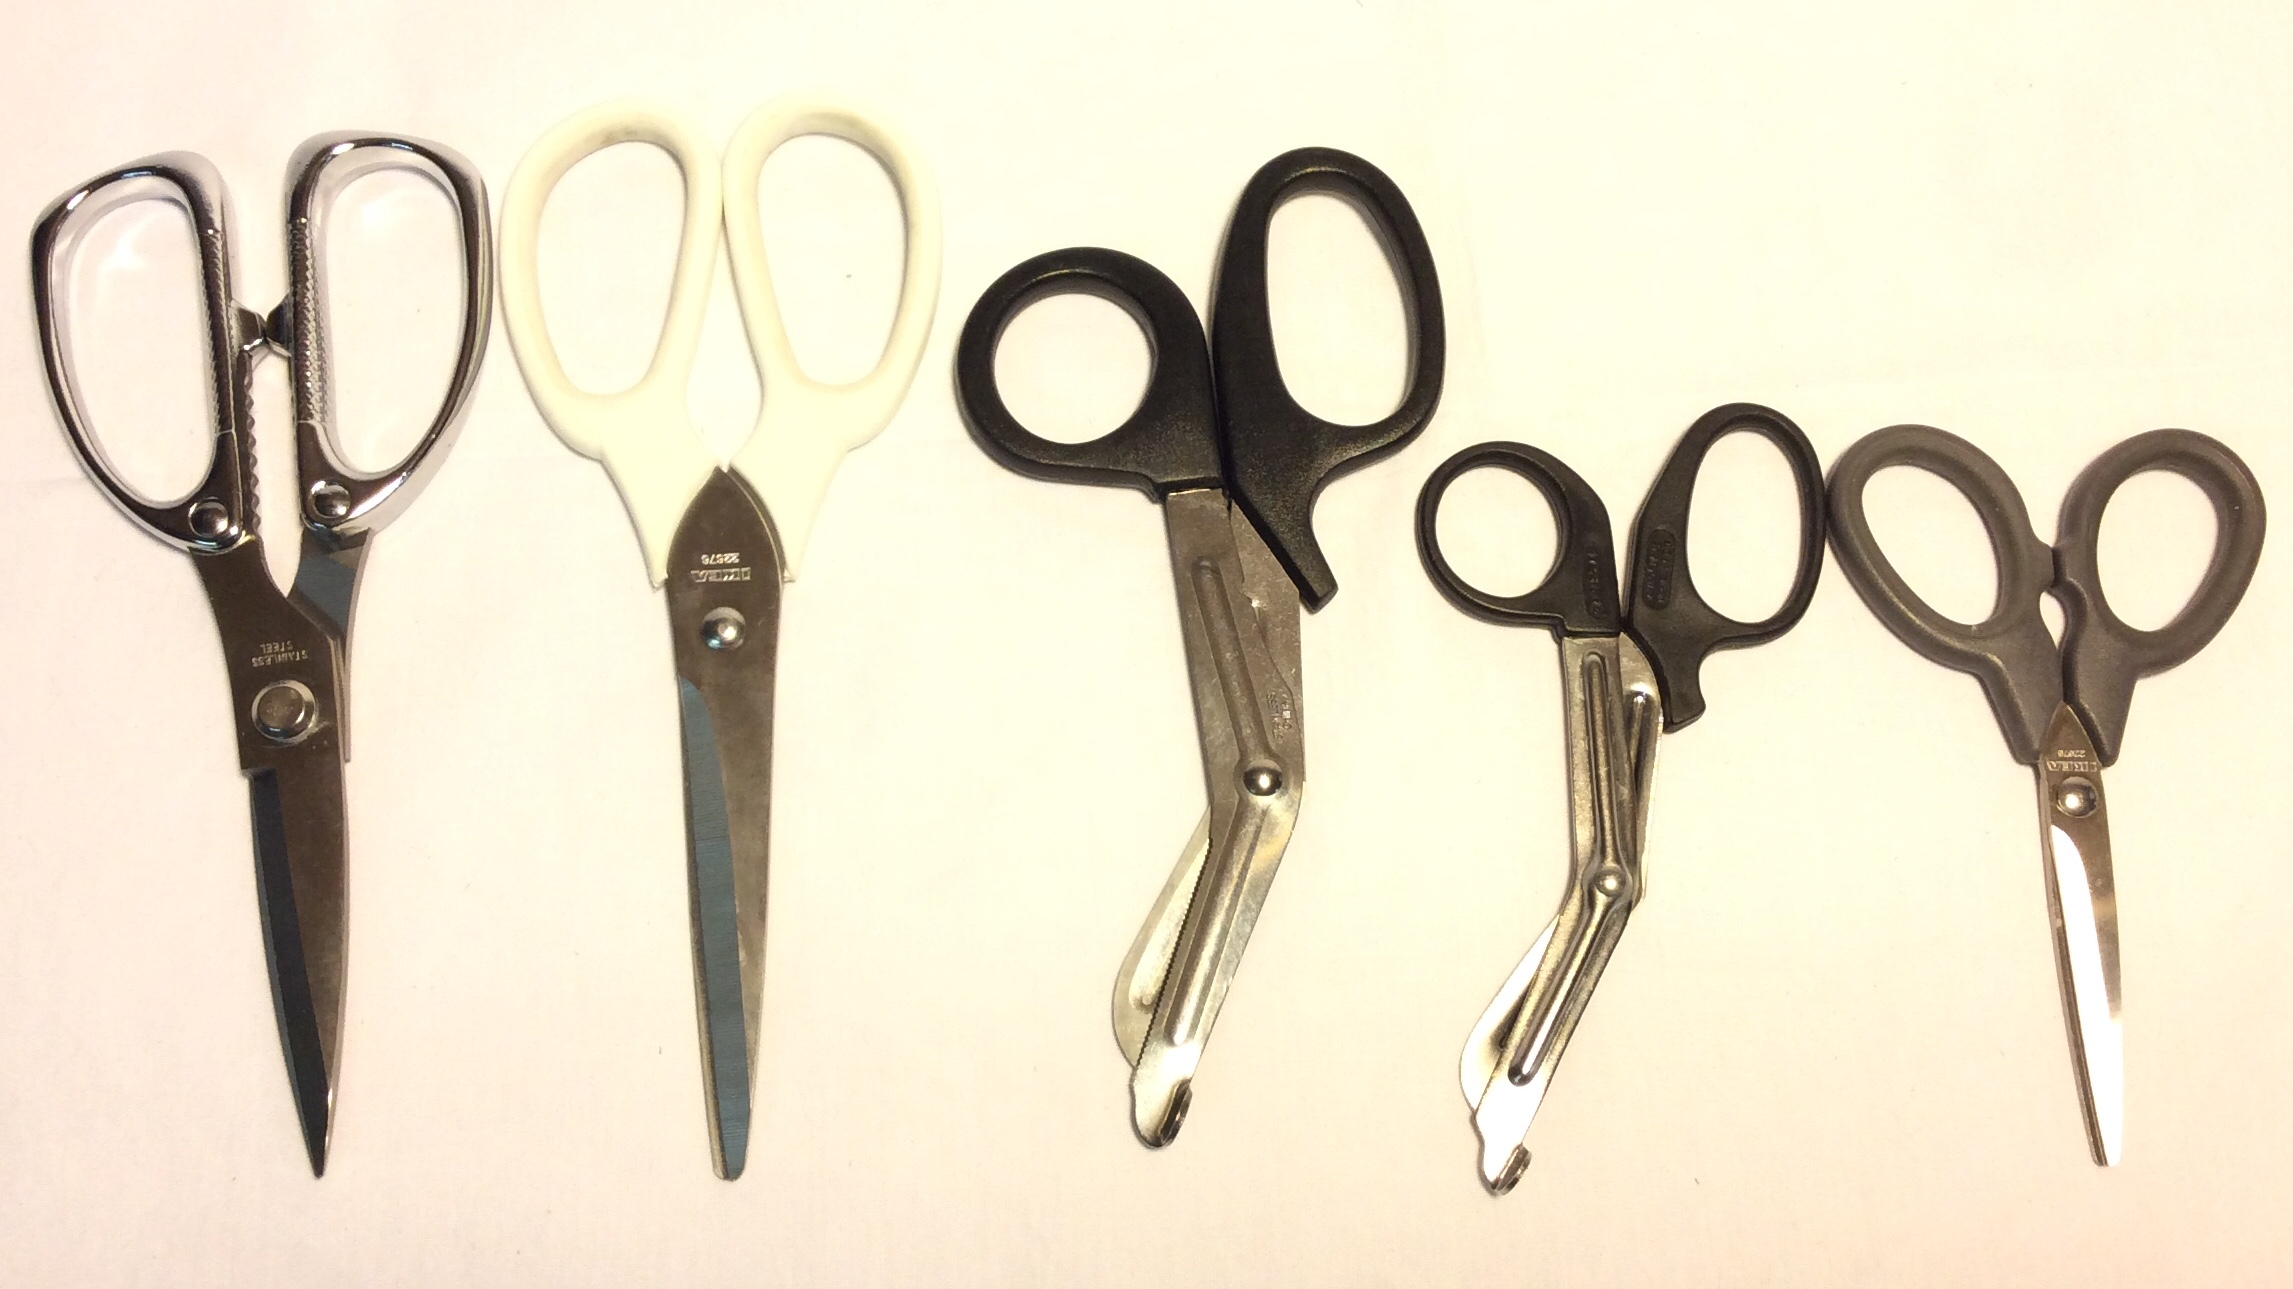 Assorted medical scissors